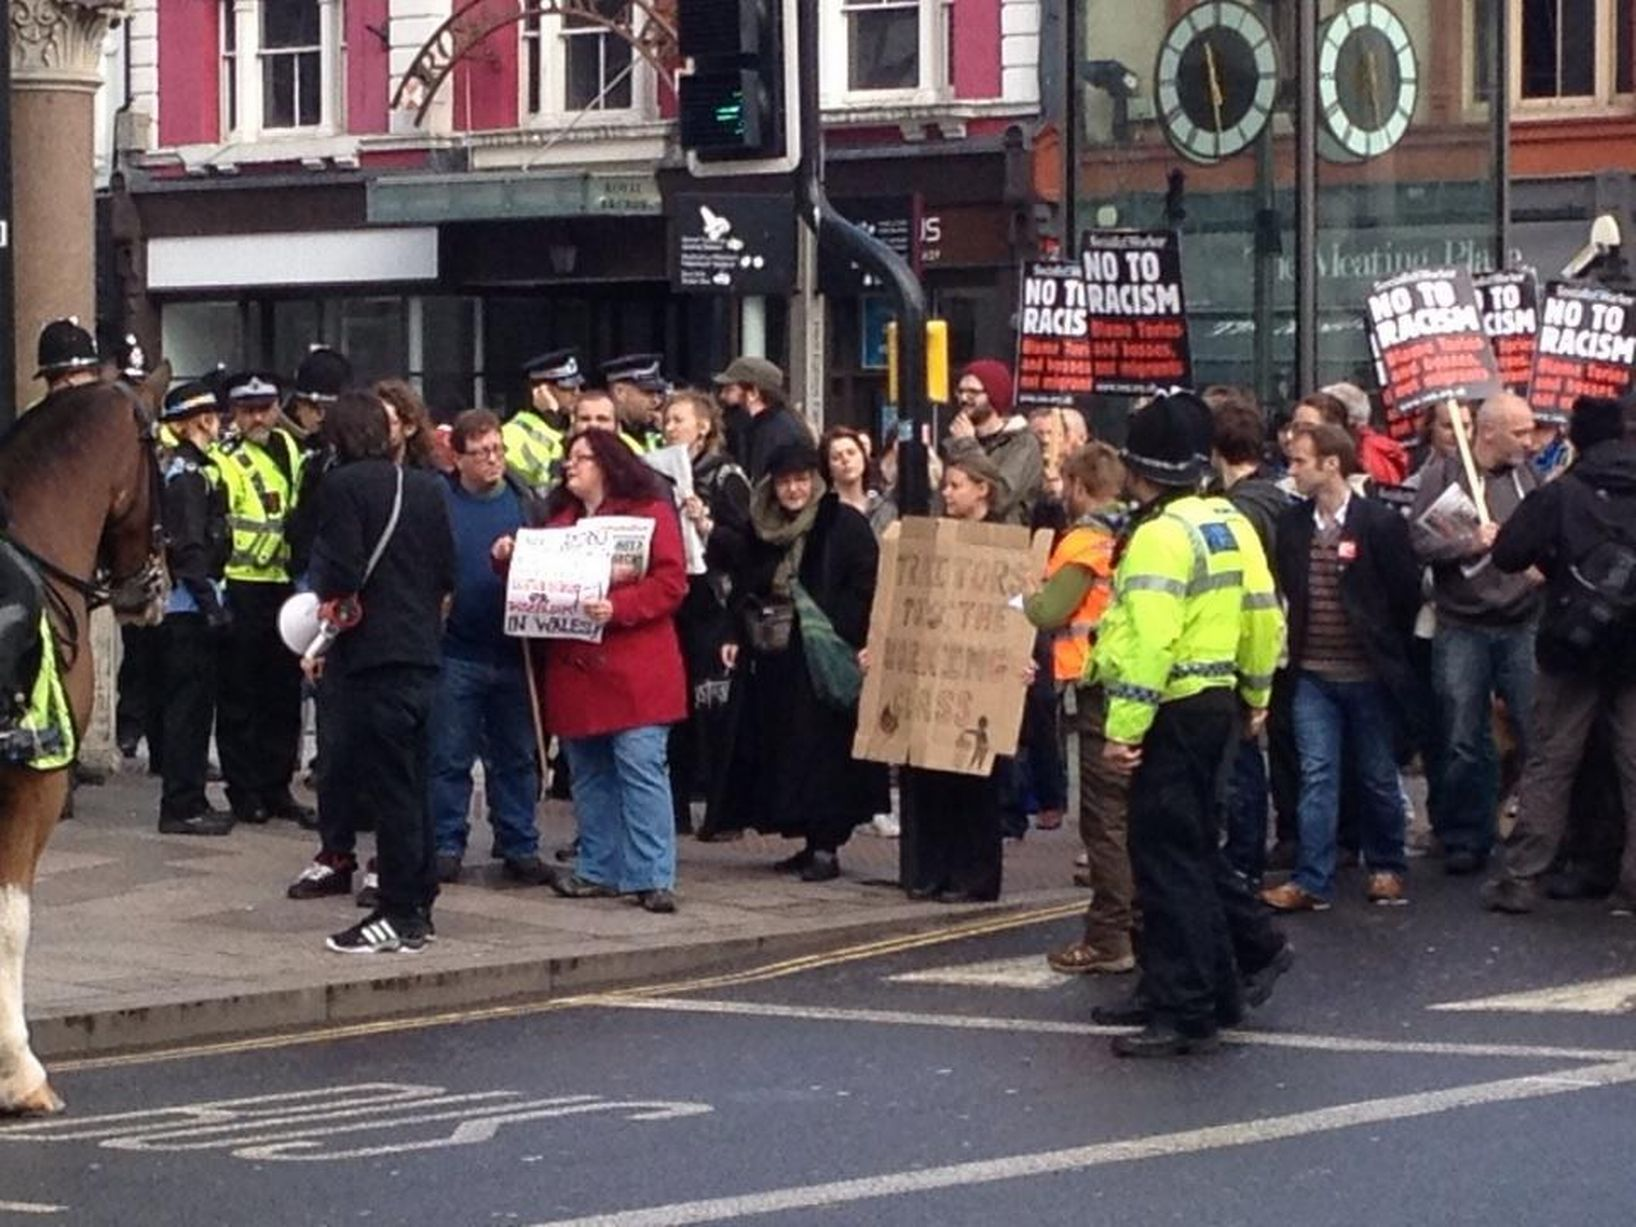 Cardiff anti-fascist protest